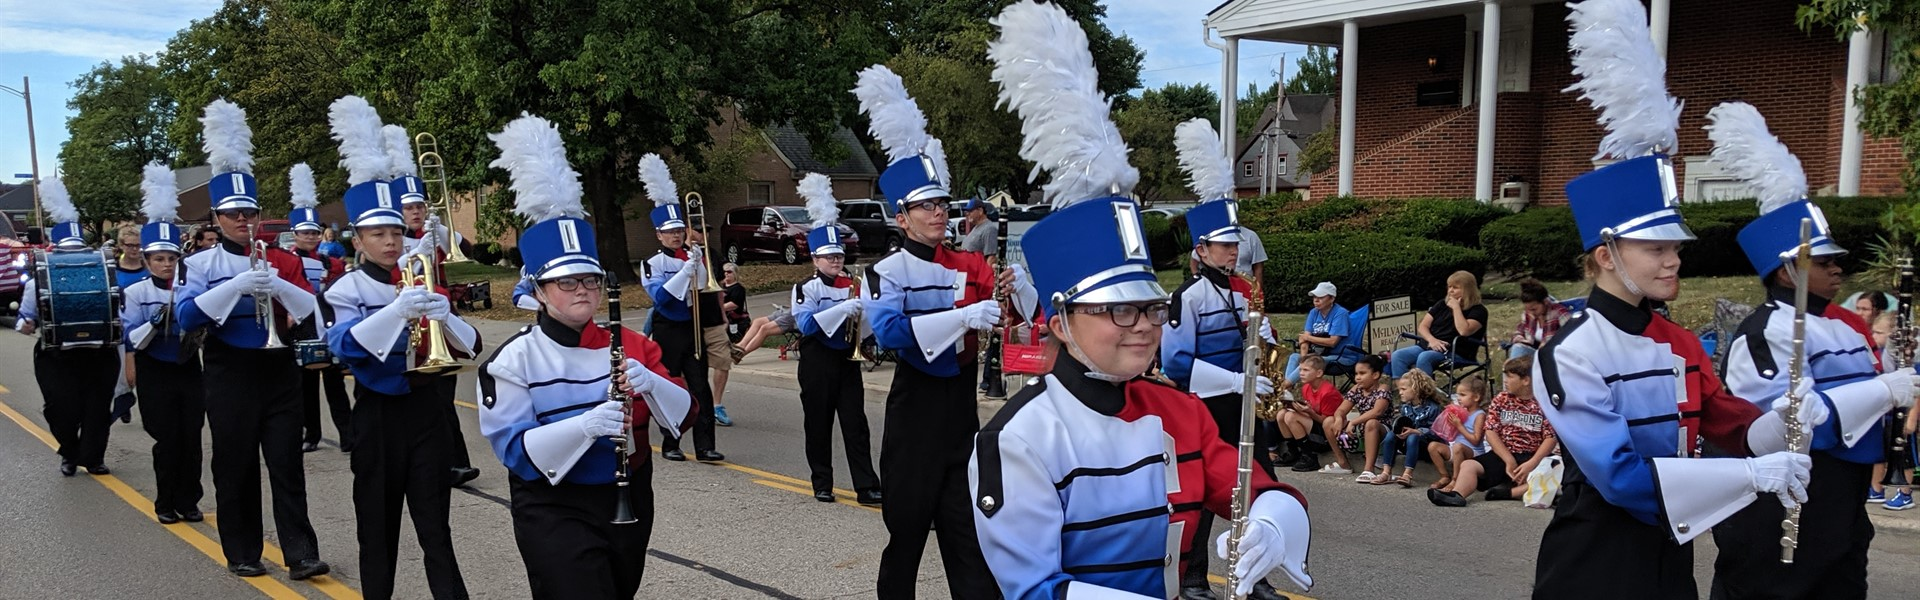 Marching Band in parade through Xenia in red, white, and blue uniforms